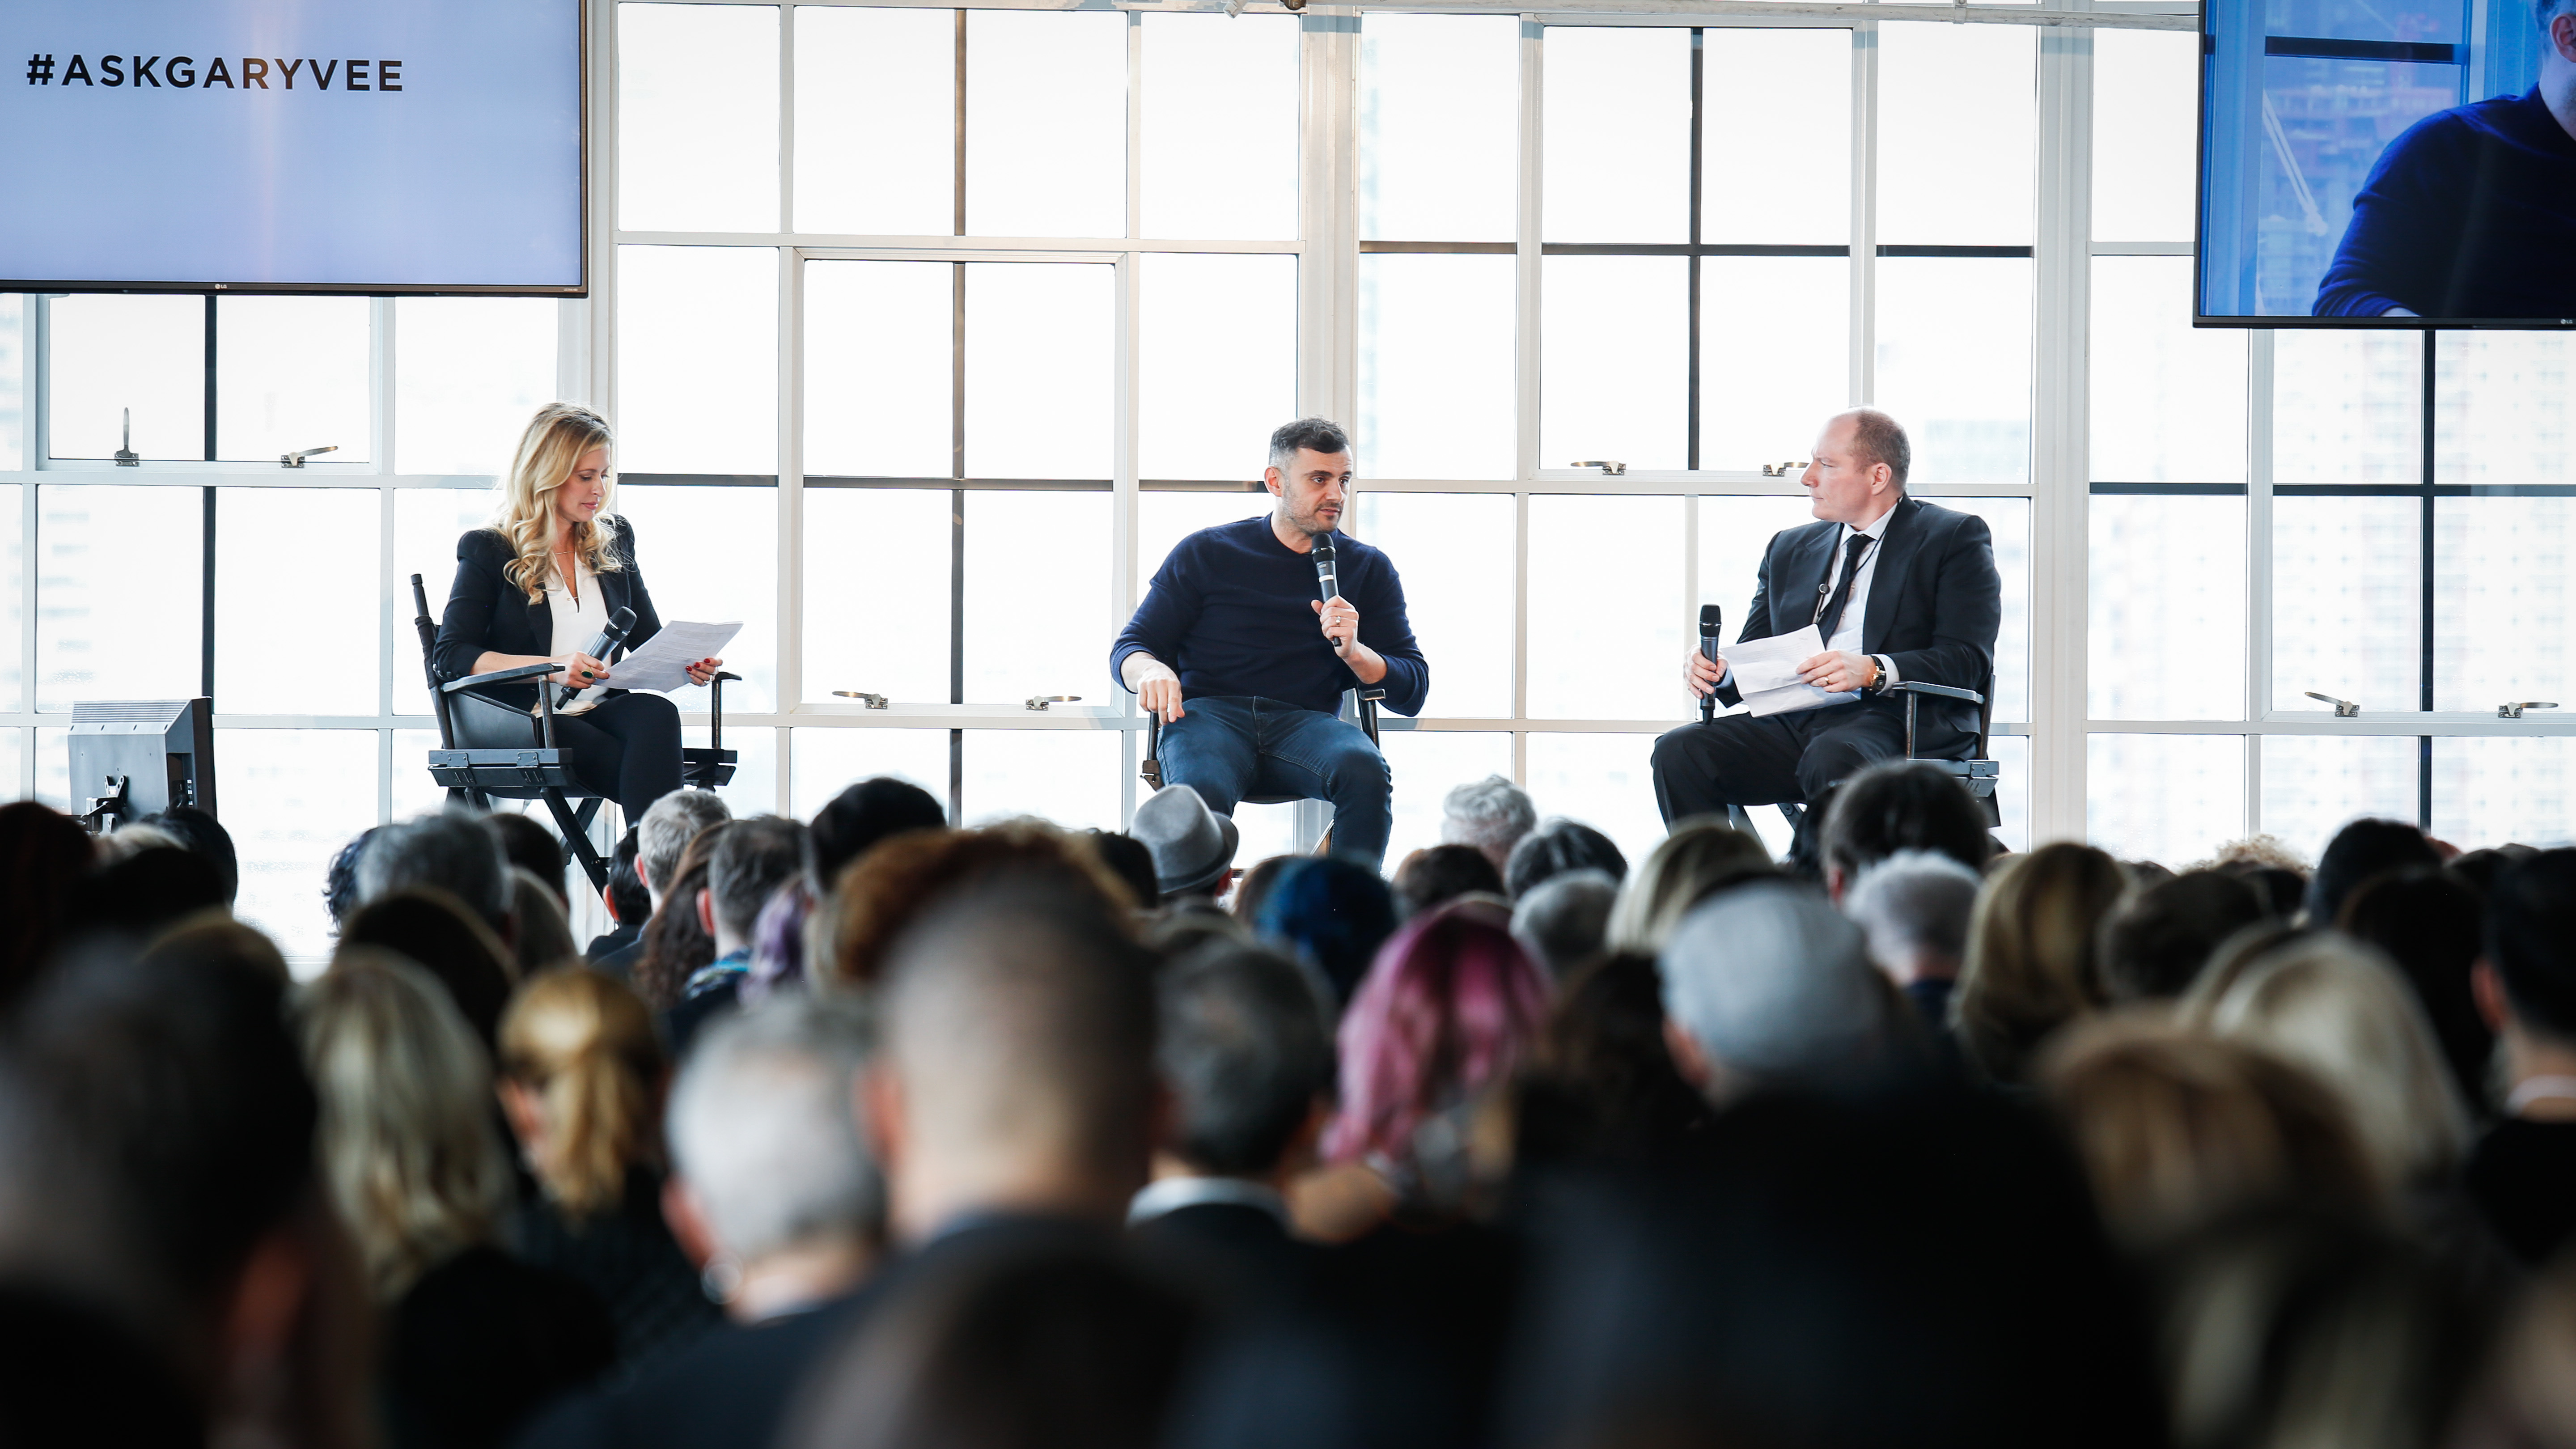 Luxury Brand Partners Vice President of Strategic Projects and Industry Development Lyndsey Bardnell (@hey_ellbee), Keynote Speaker Gary Vaynerchuk (@garyvee) and LBP President and CEO Tev Finger (@tevfinger)